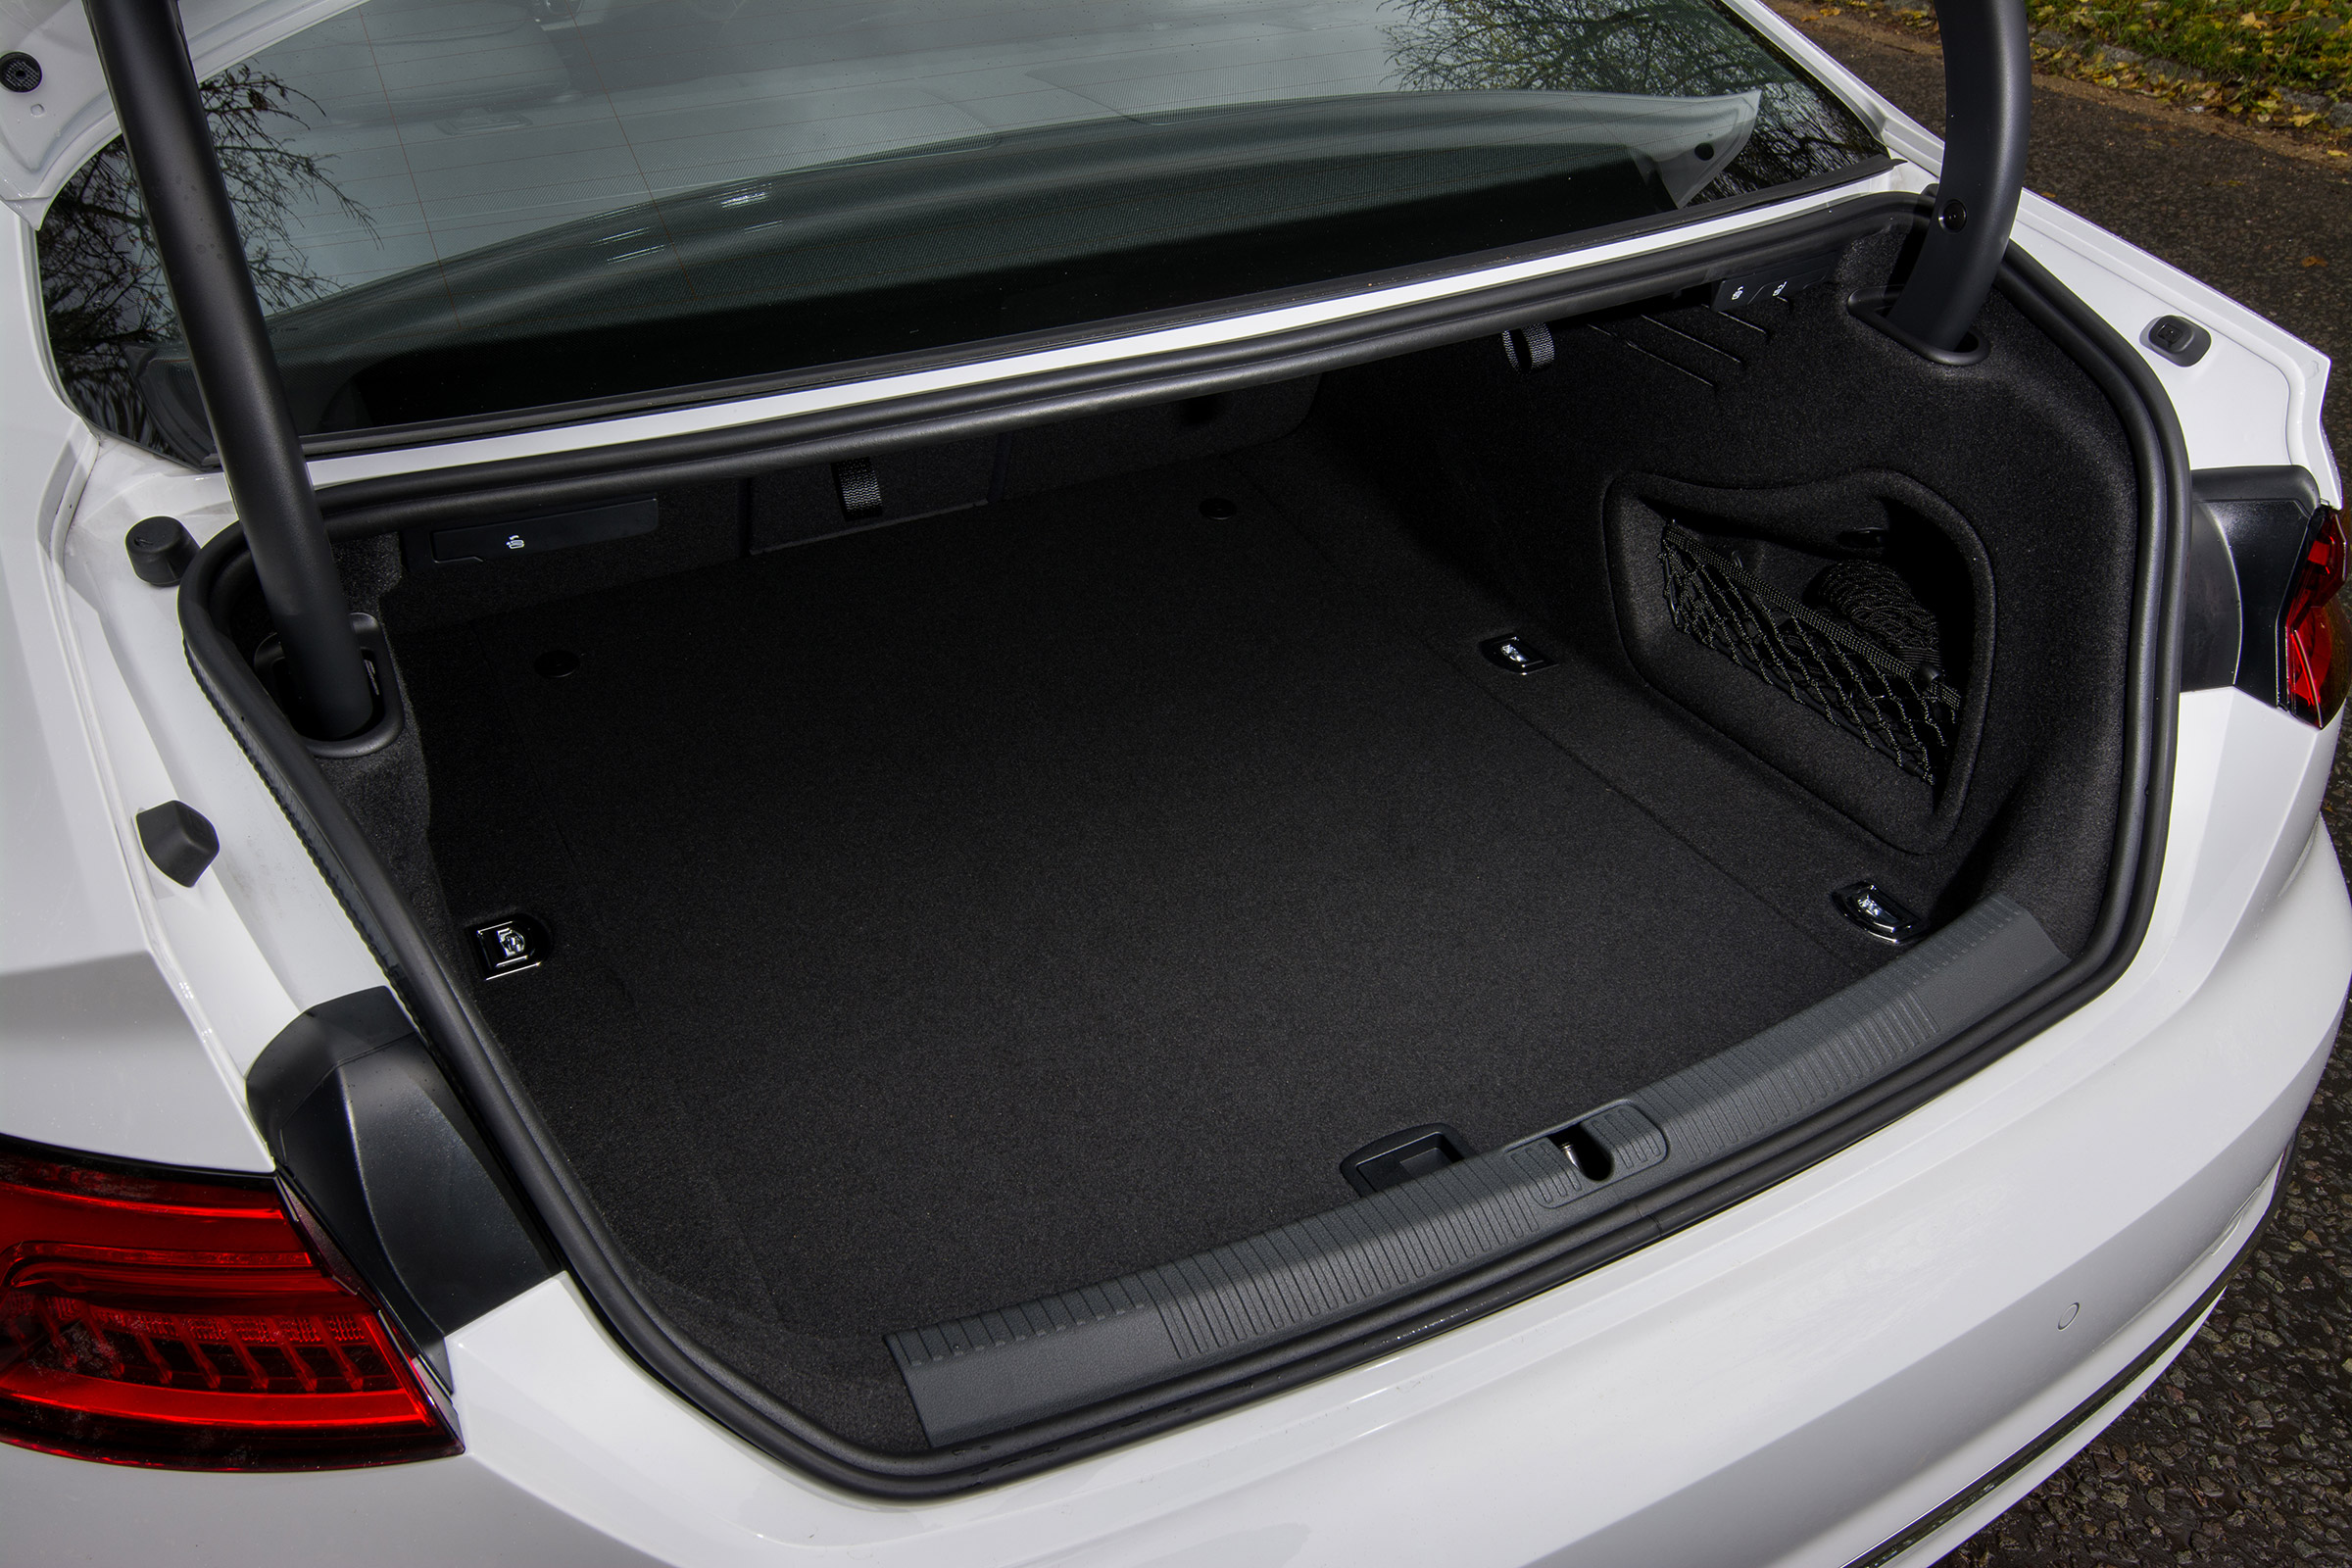 2017 Audi A5 Coupe Interior View Cargo Trunk (Photo 11 of 21)